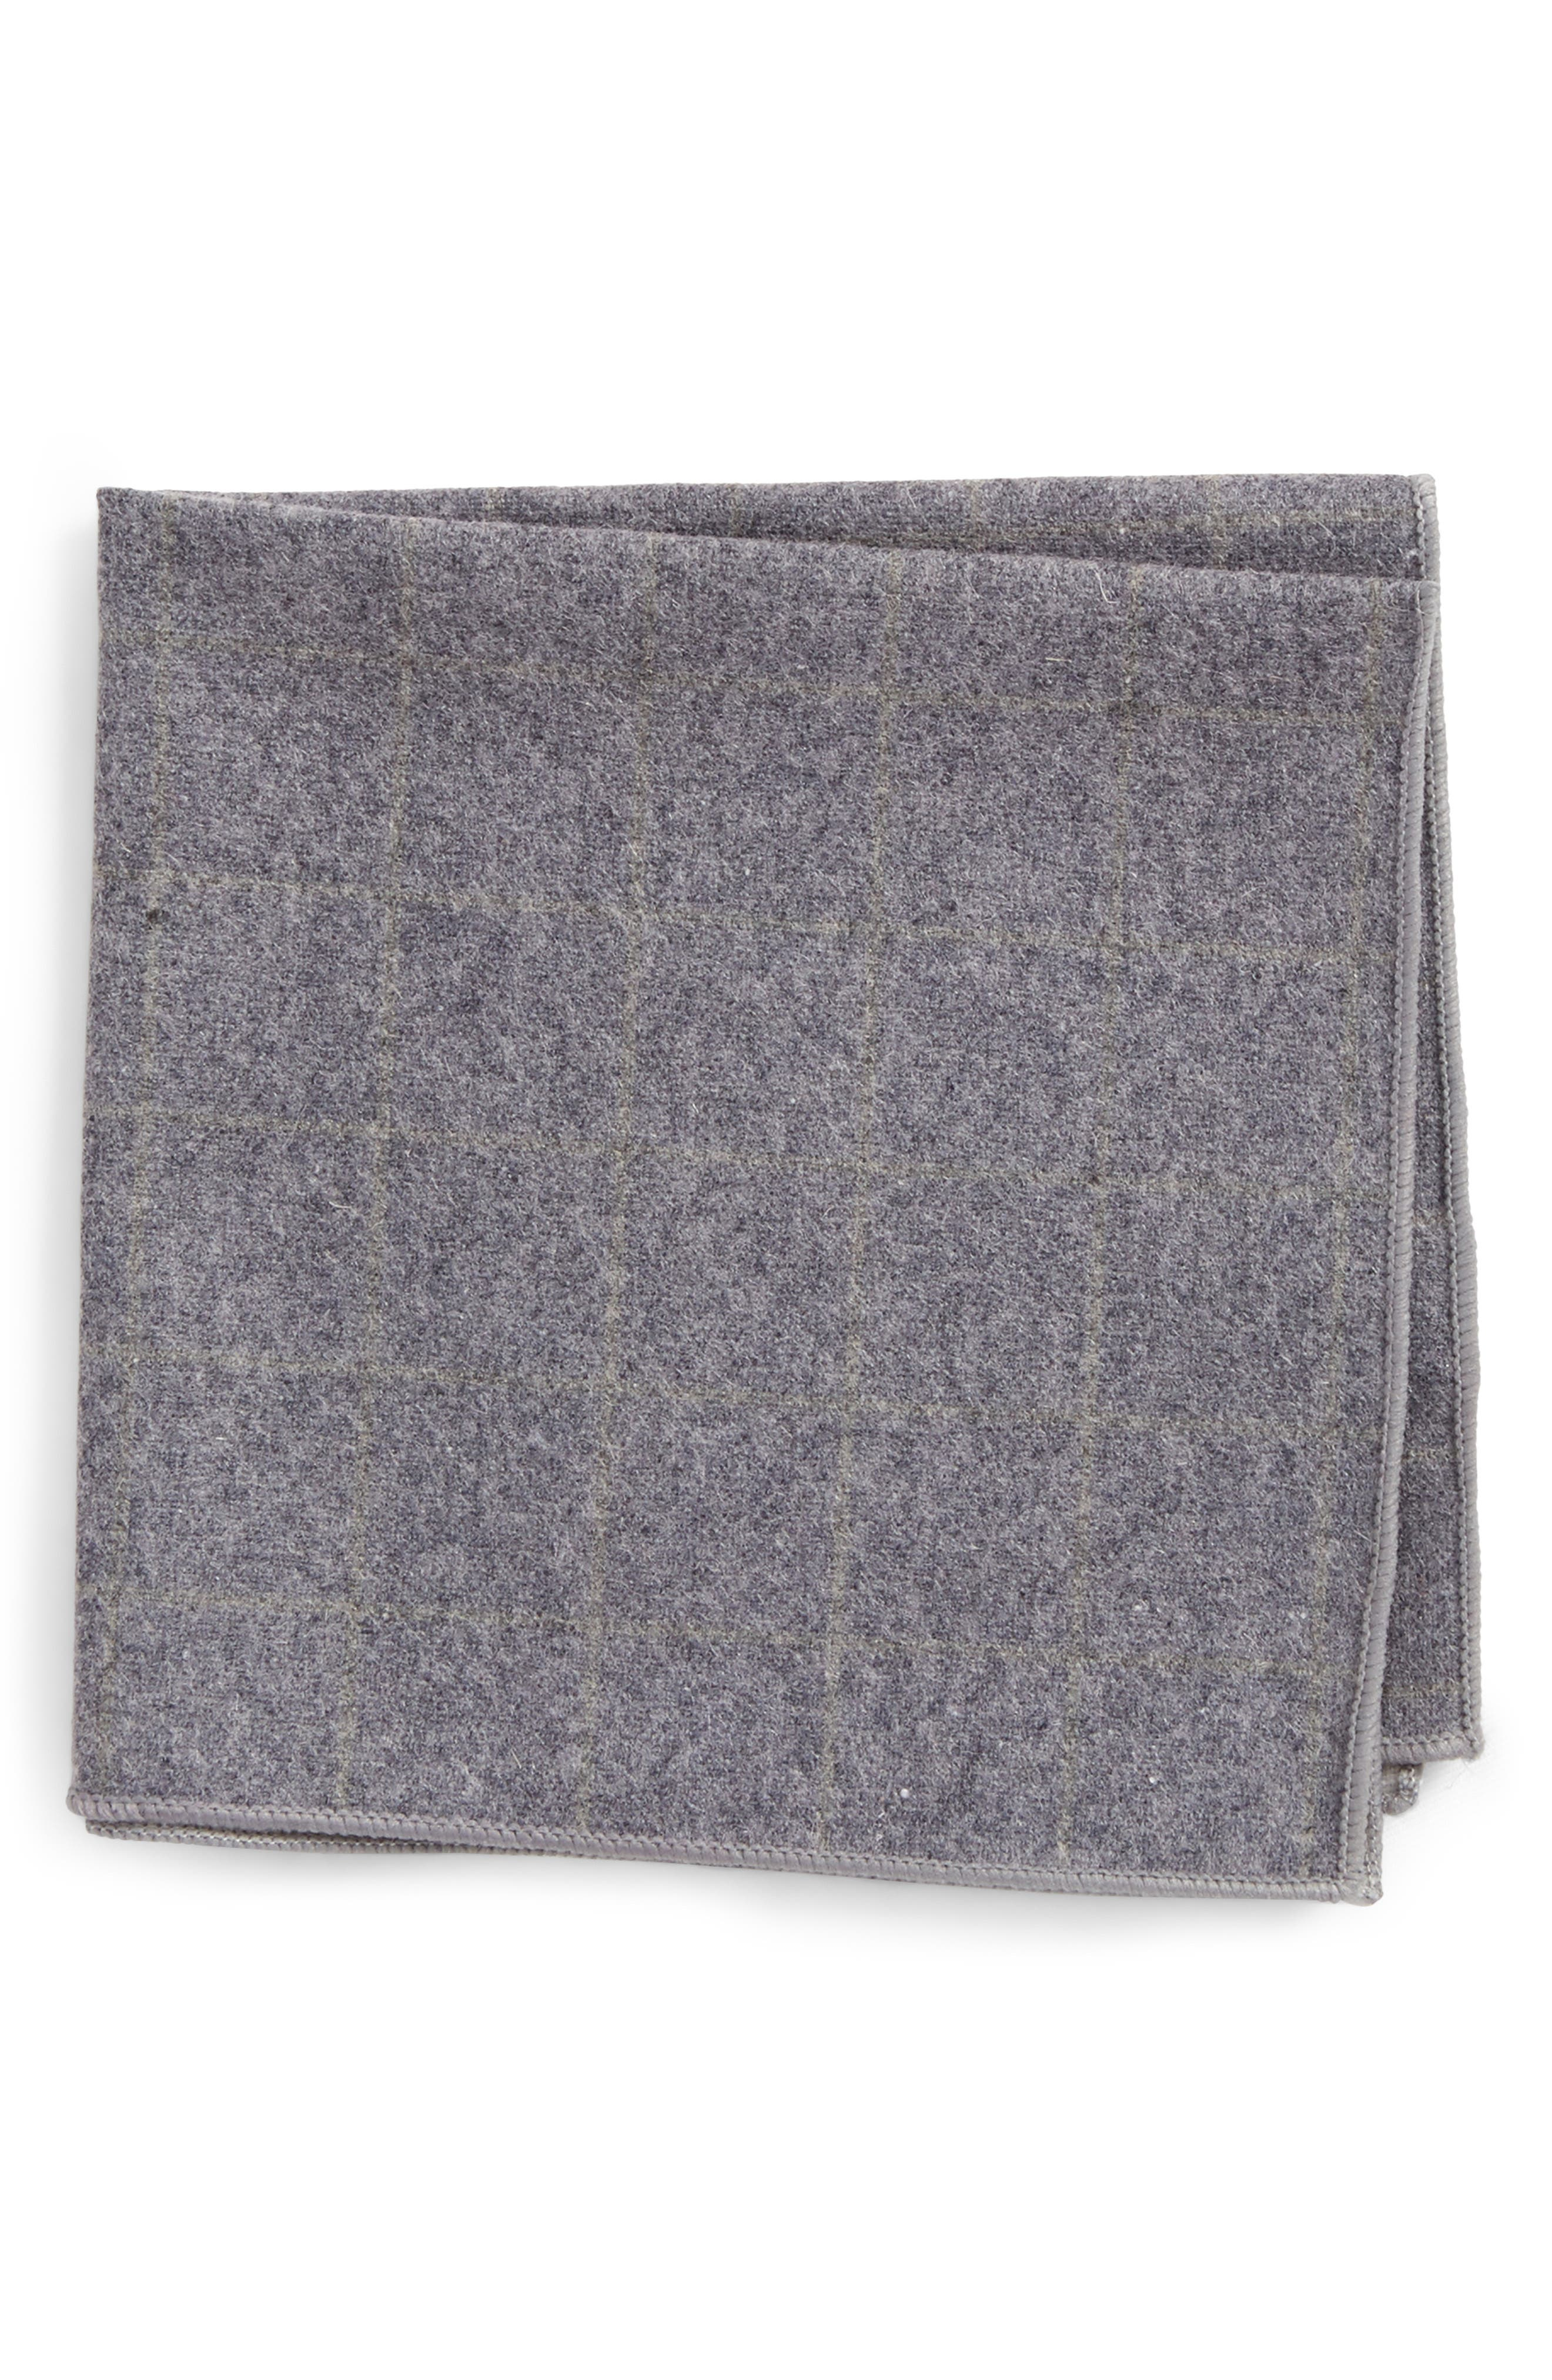 Main Image - The Tie Bar Flannel Pocket Square